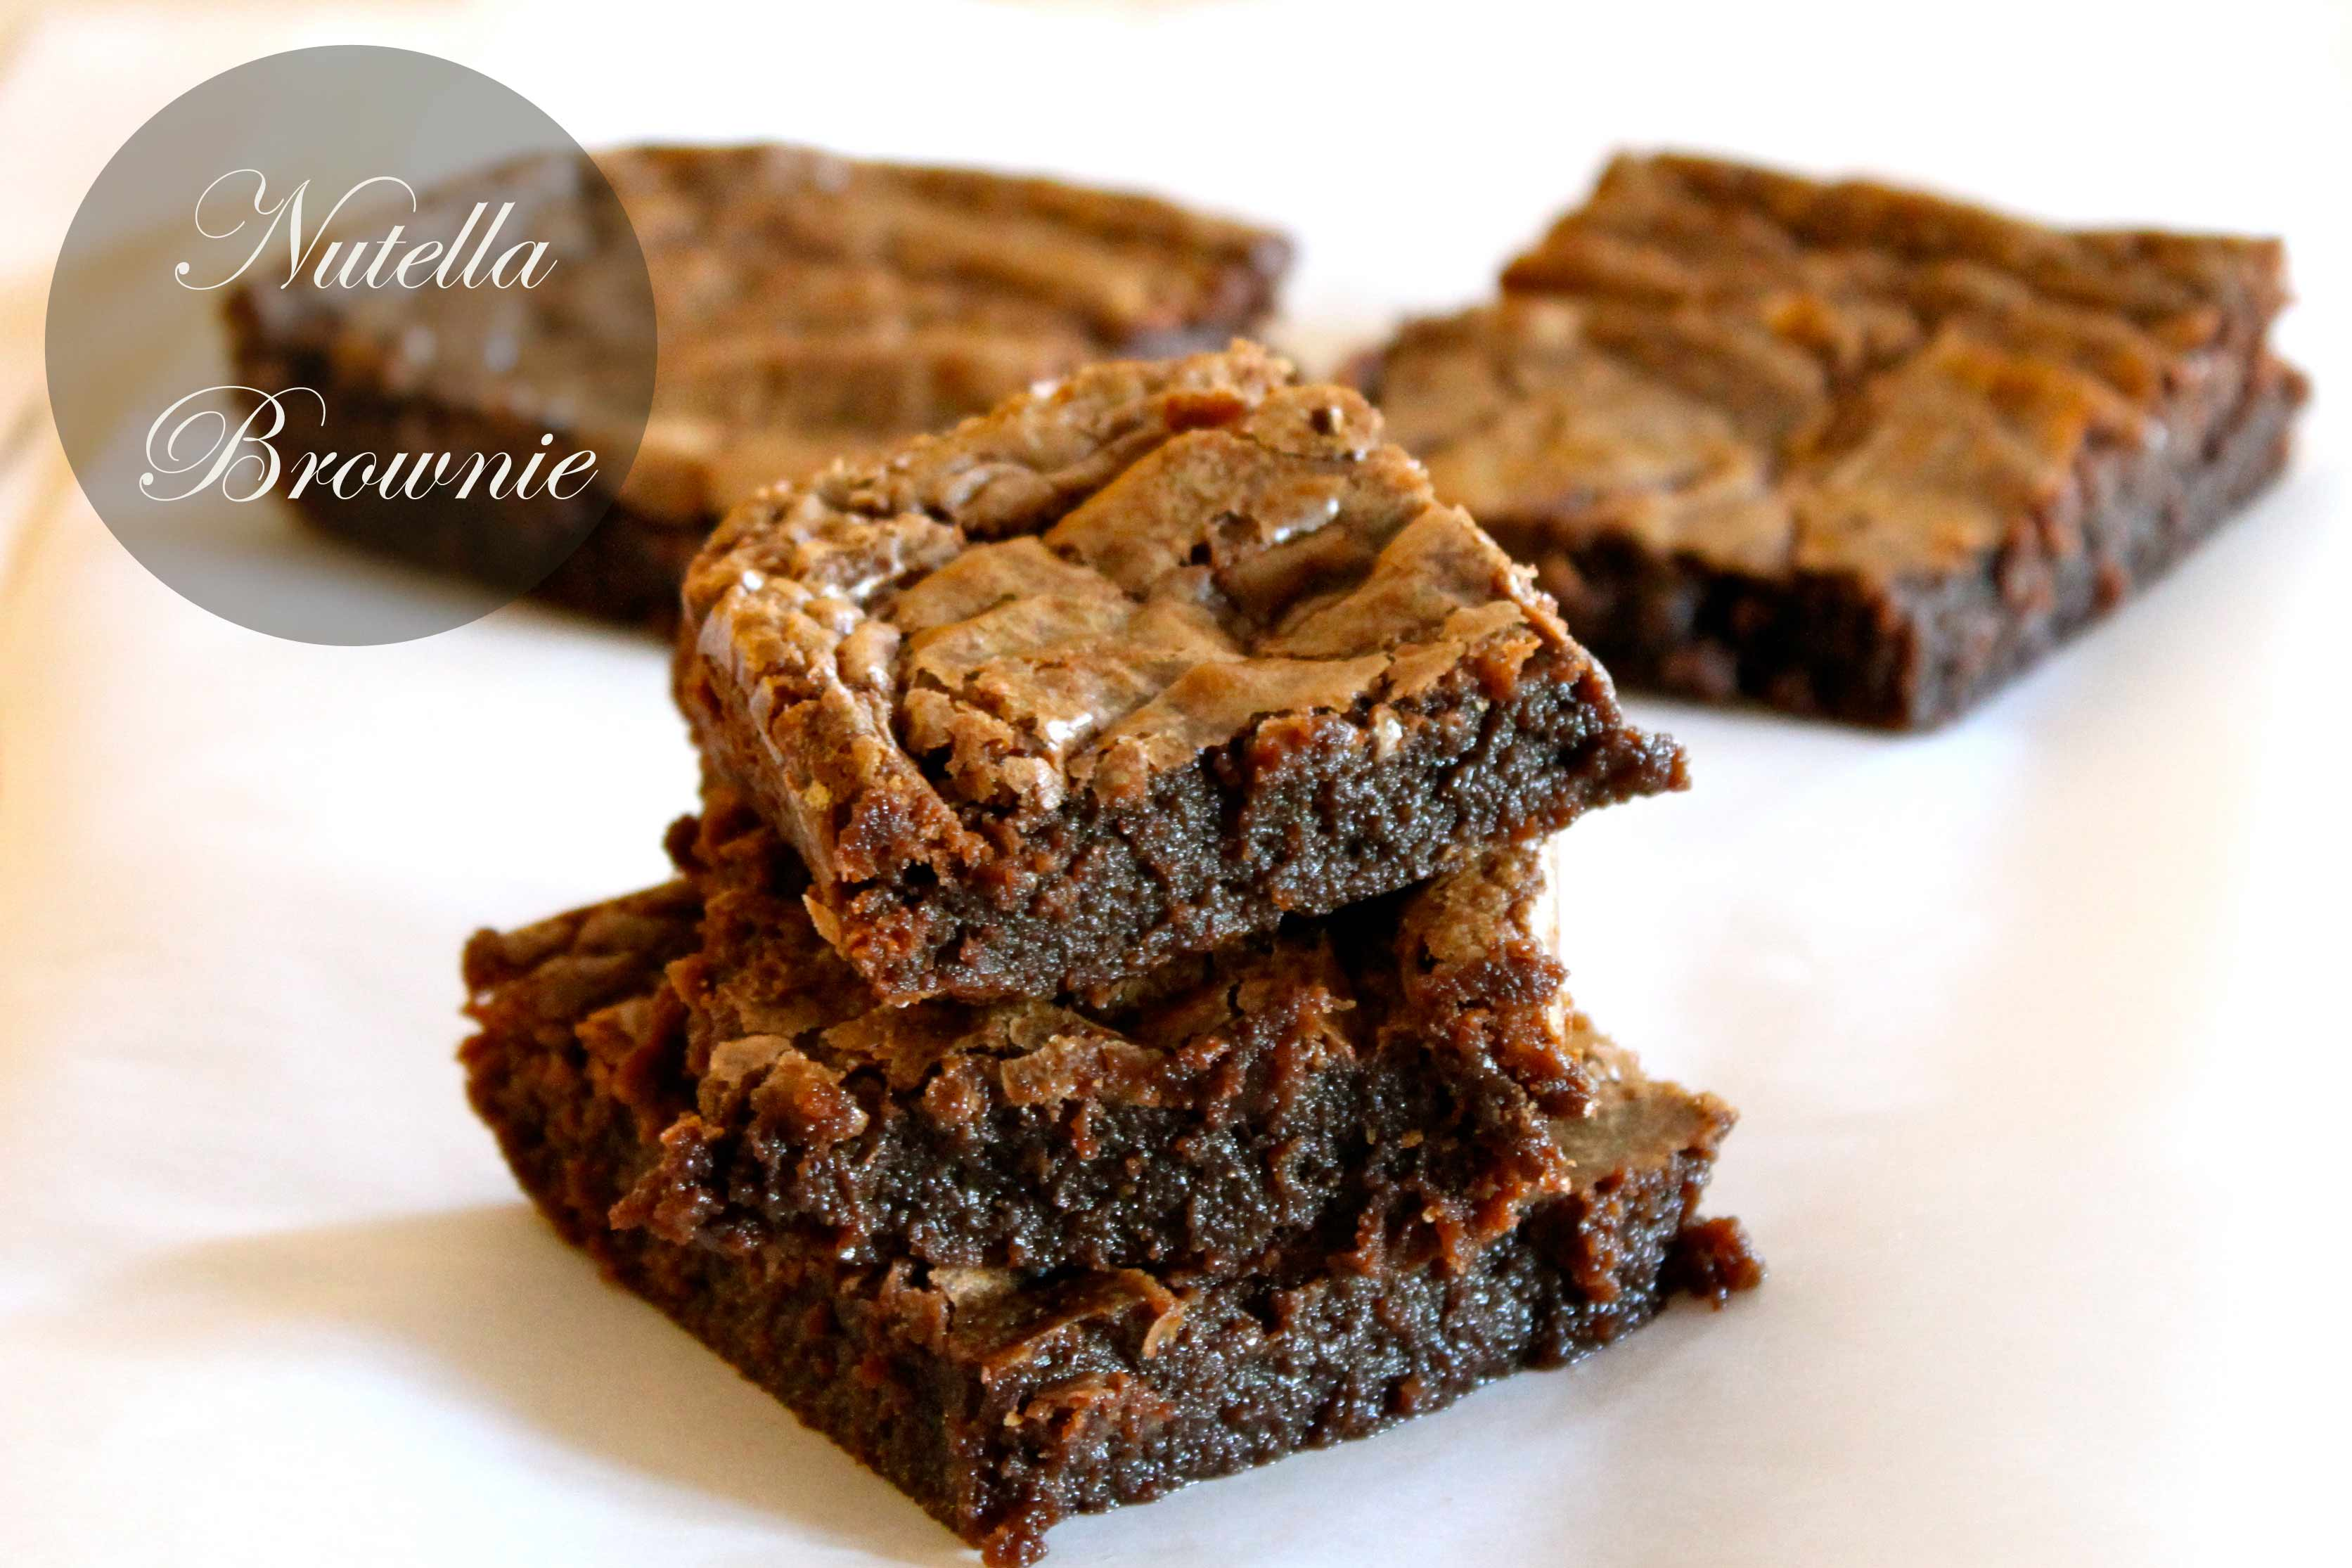 Recipe: Nutella Chocolate Brownie | Eat Style Shop